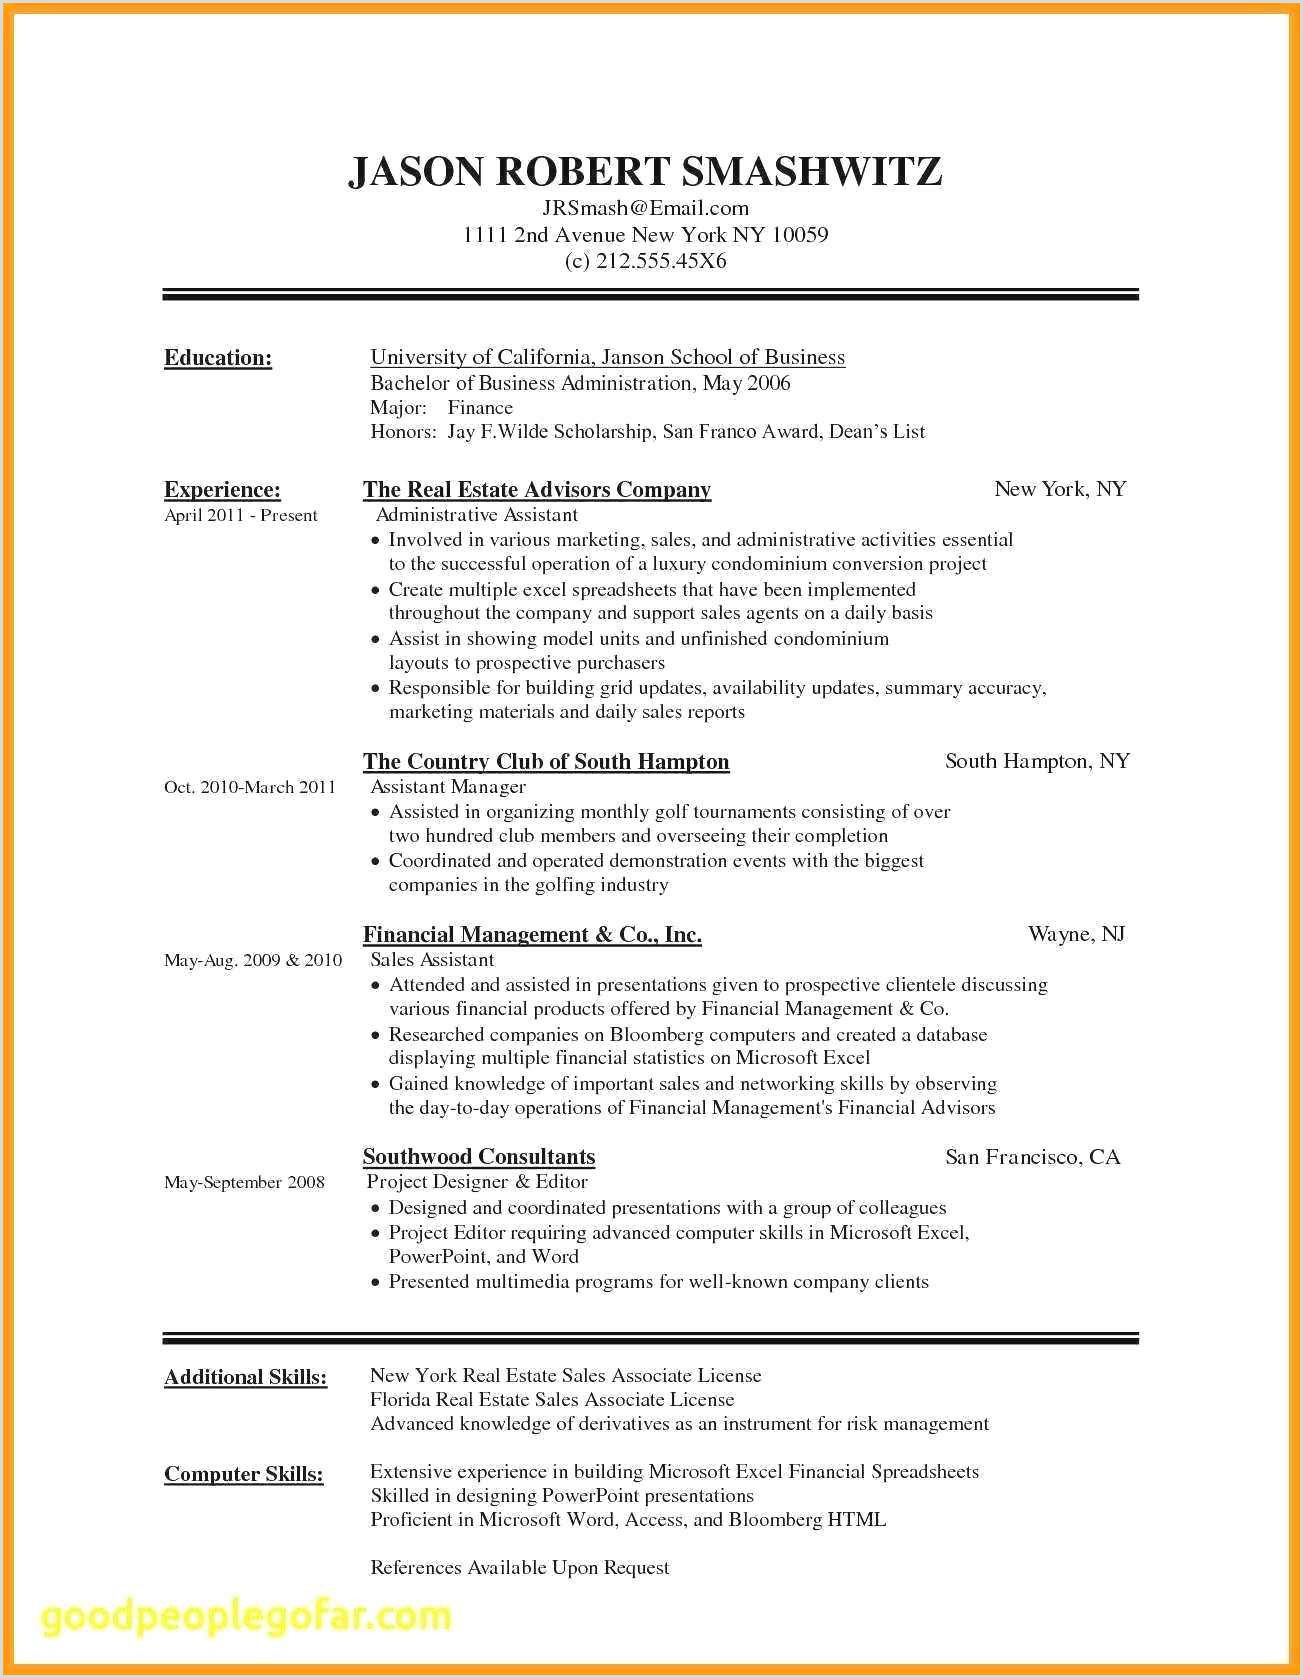 Resume Format For Job Microsoft Word Powerpoint Professional Attractive Free Download Resume